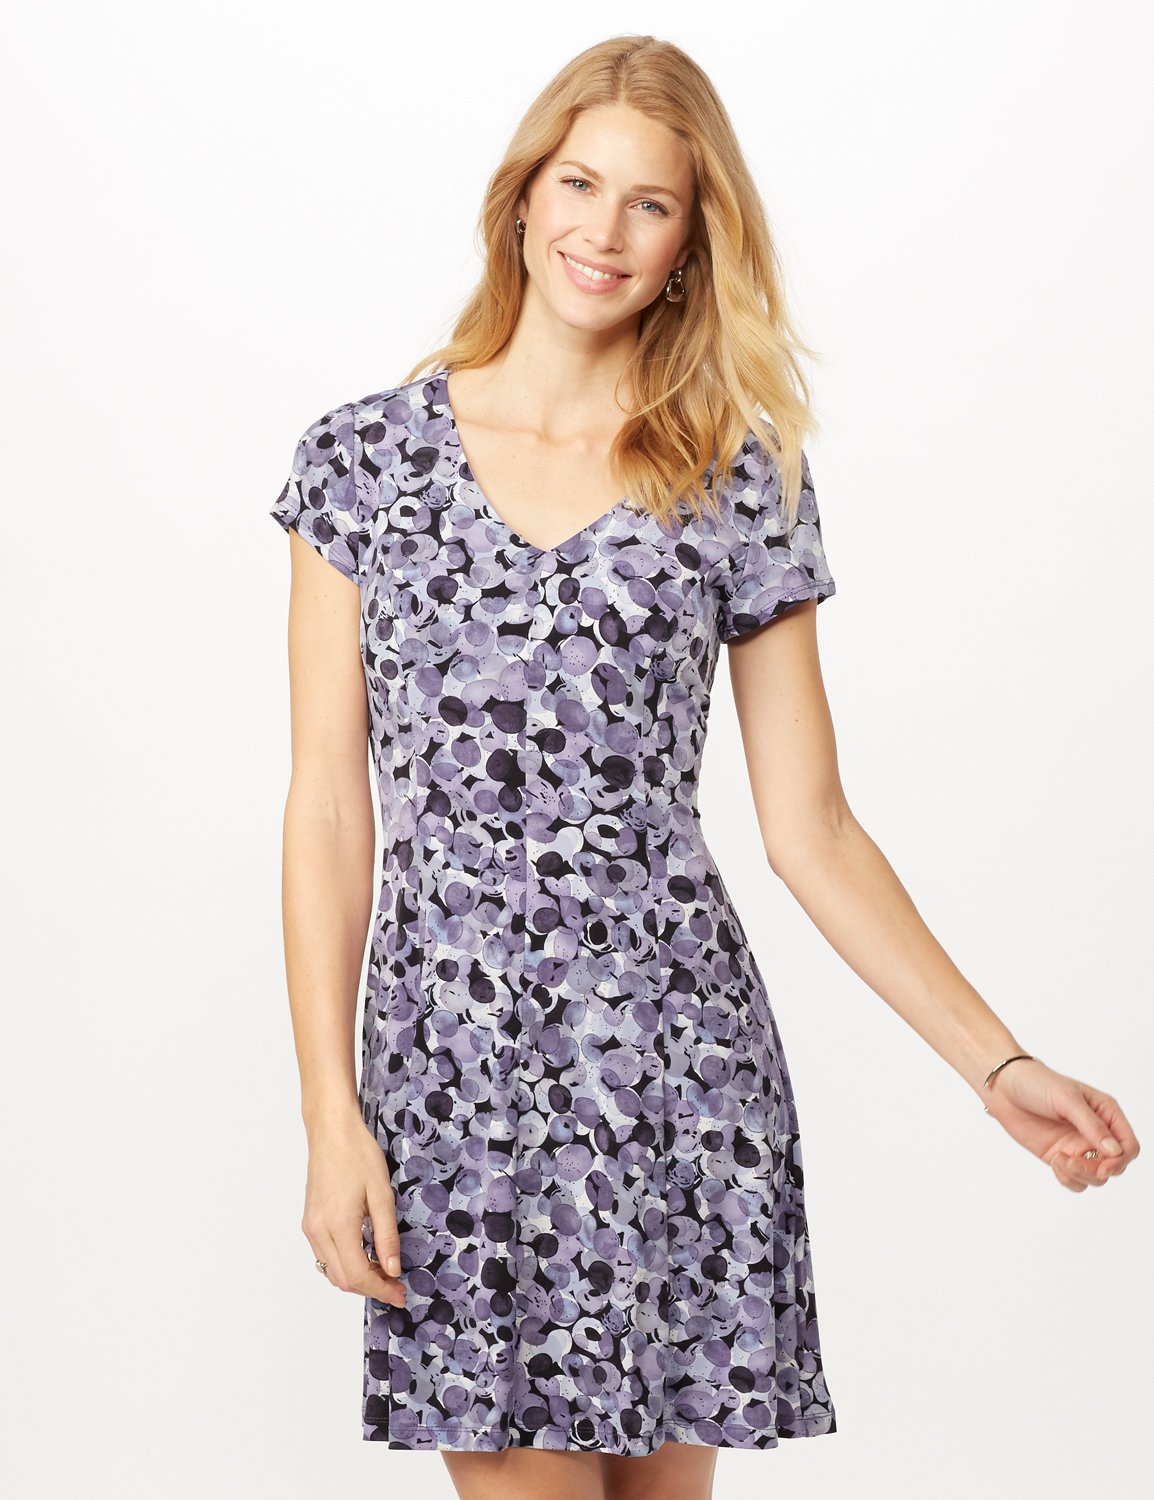 Bubble Dot Dress with Seam Detail -Lilac - Front